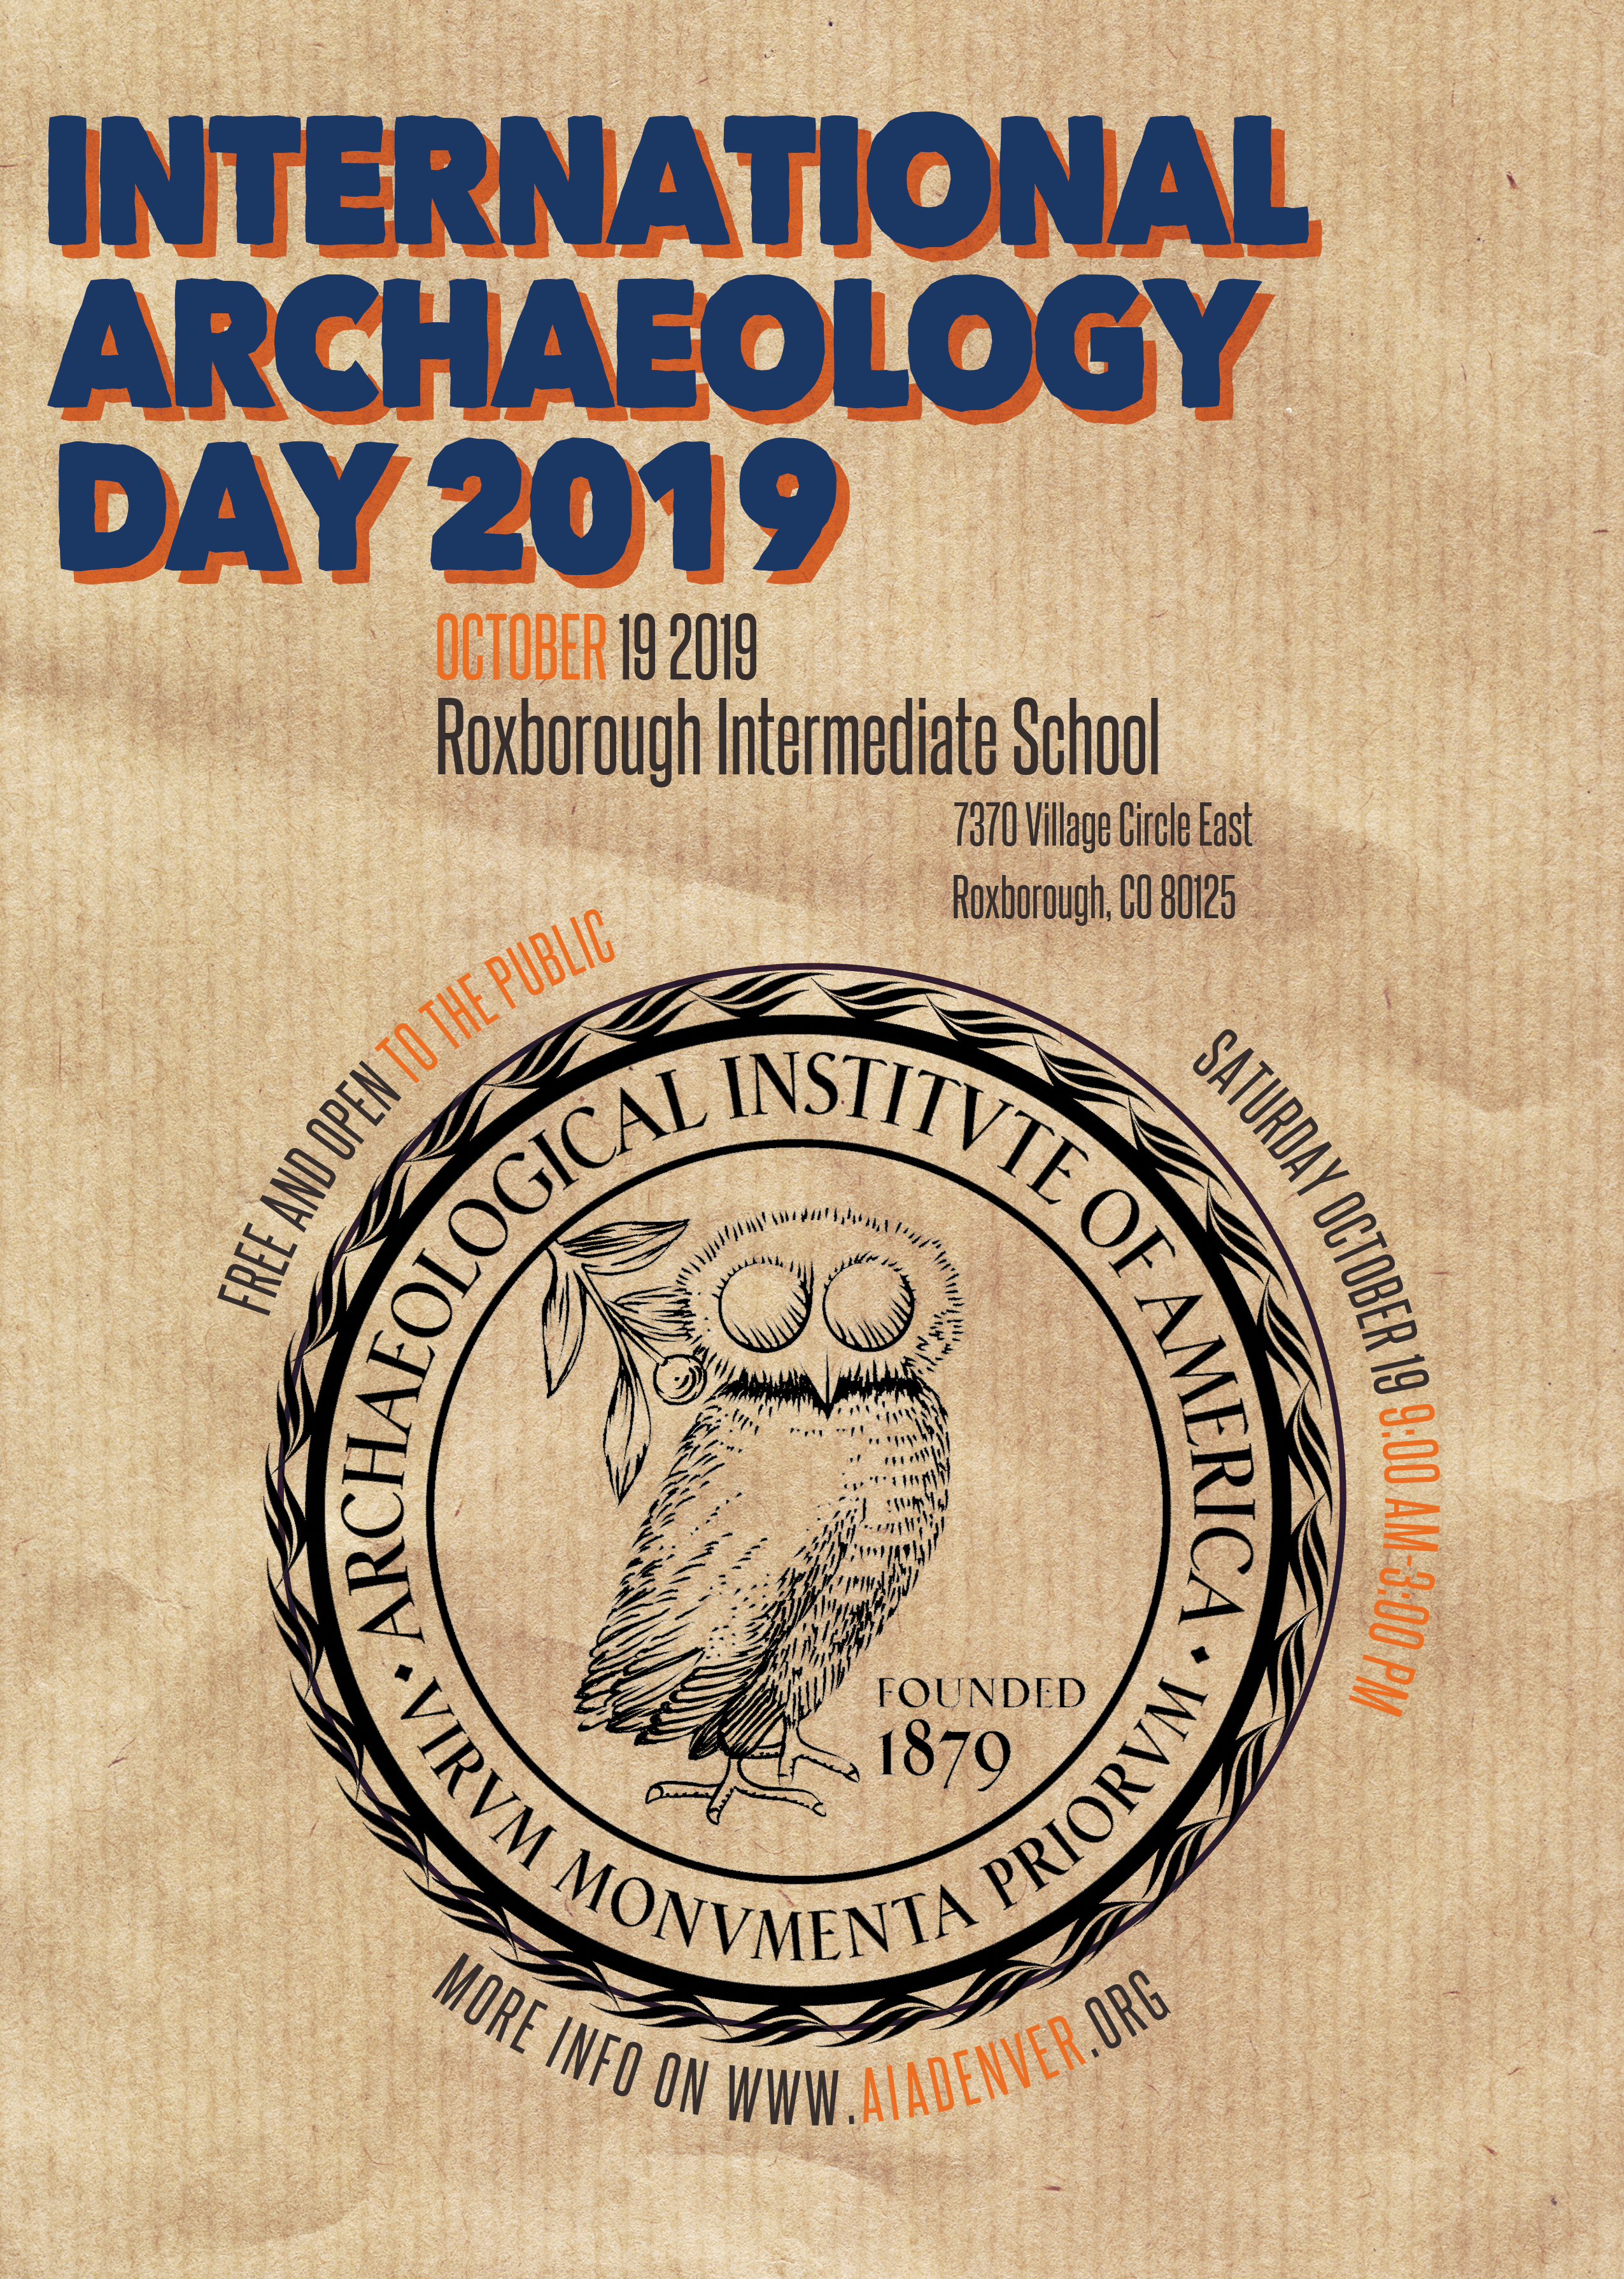 AIA Event Listings - 2019 International Archaeology Day - The ...